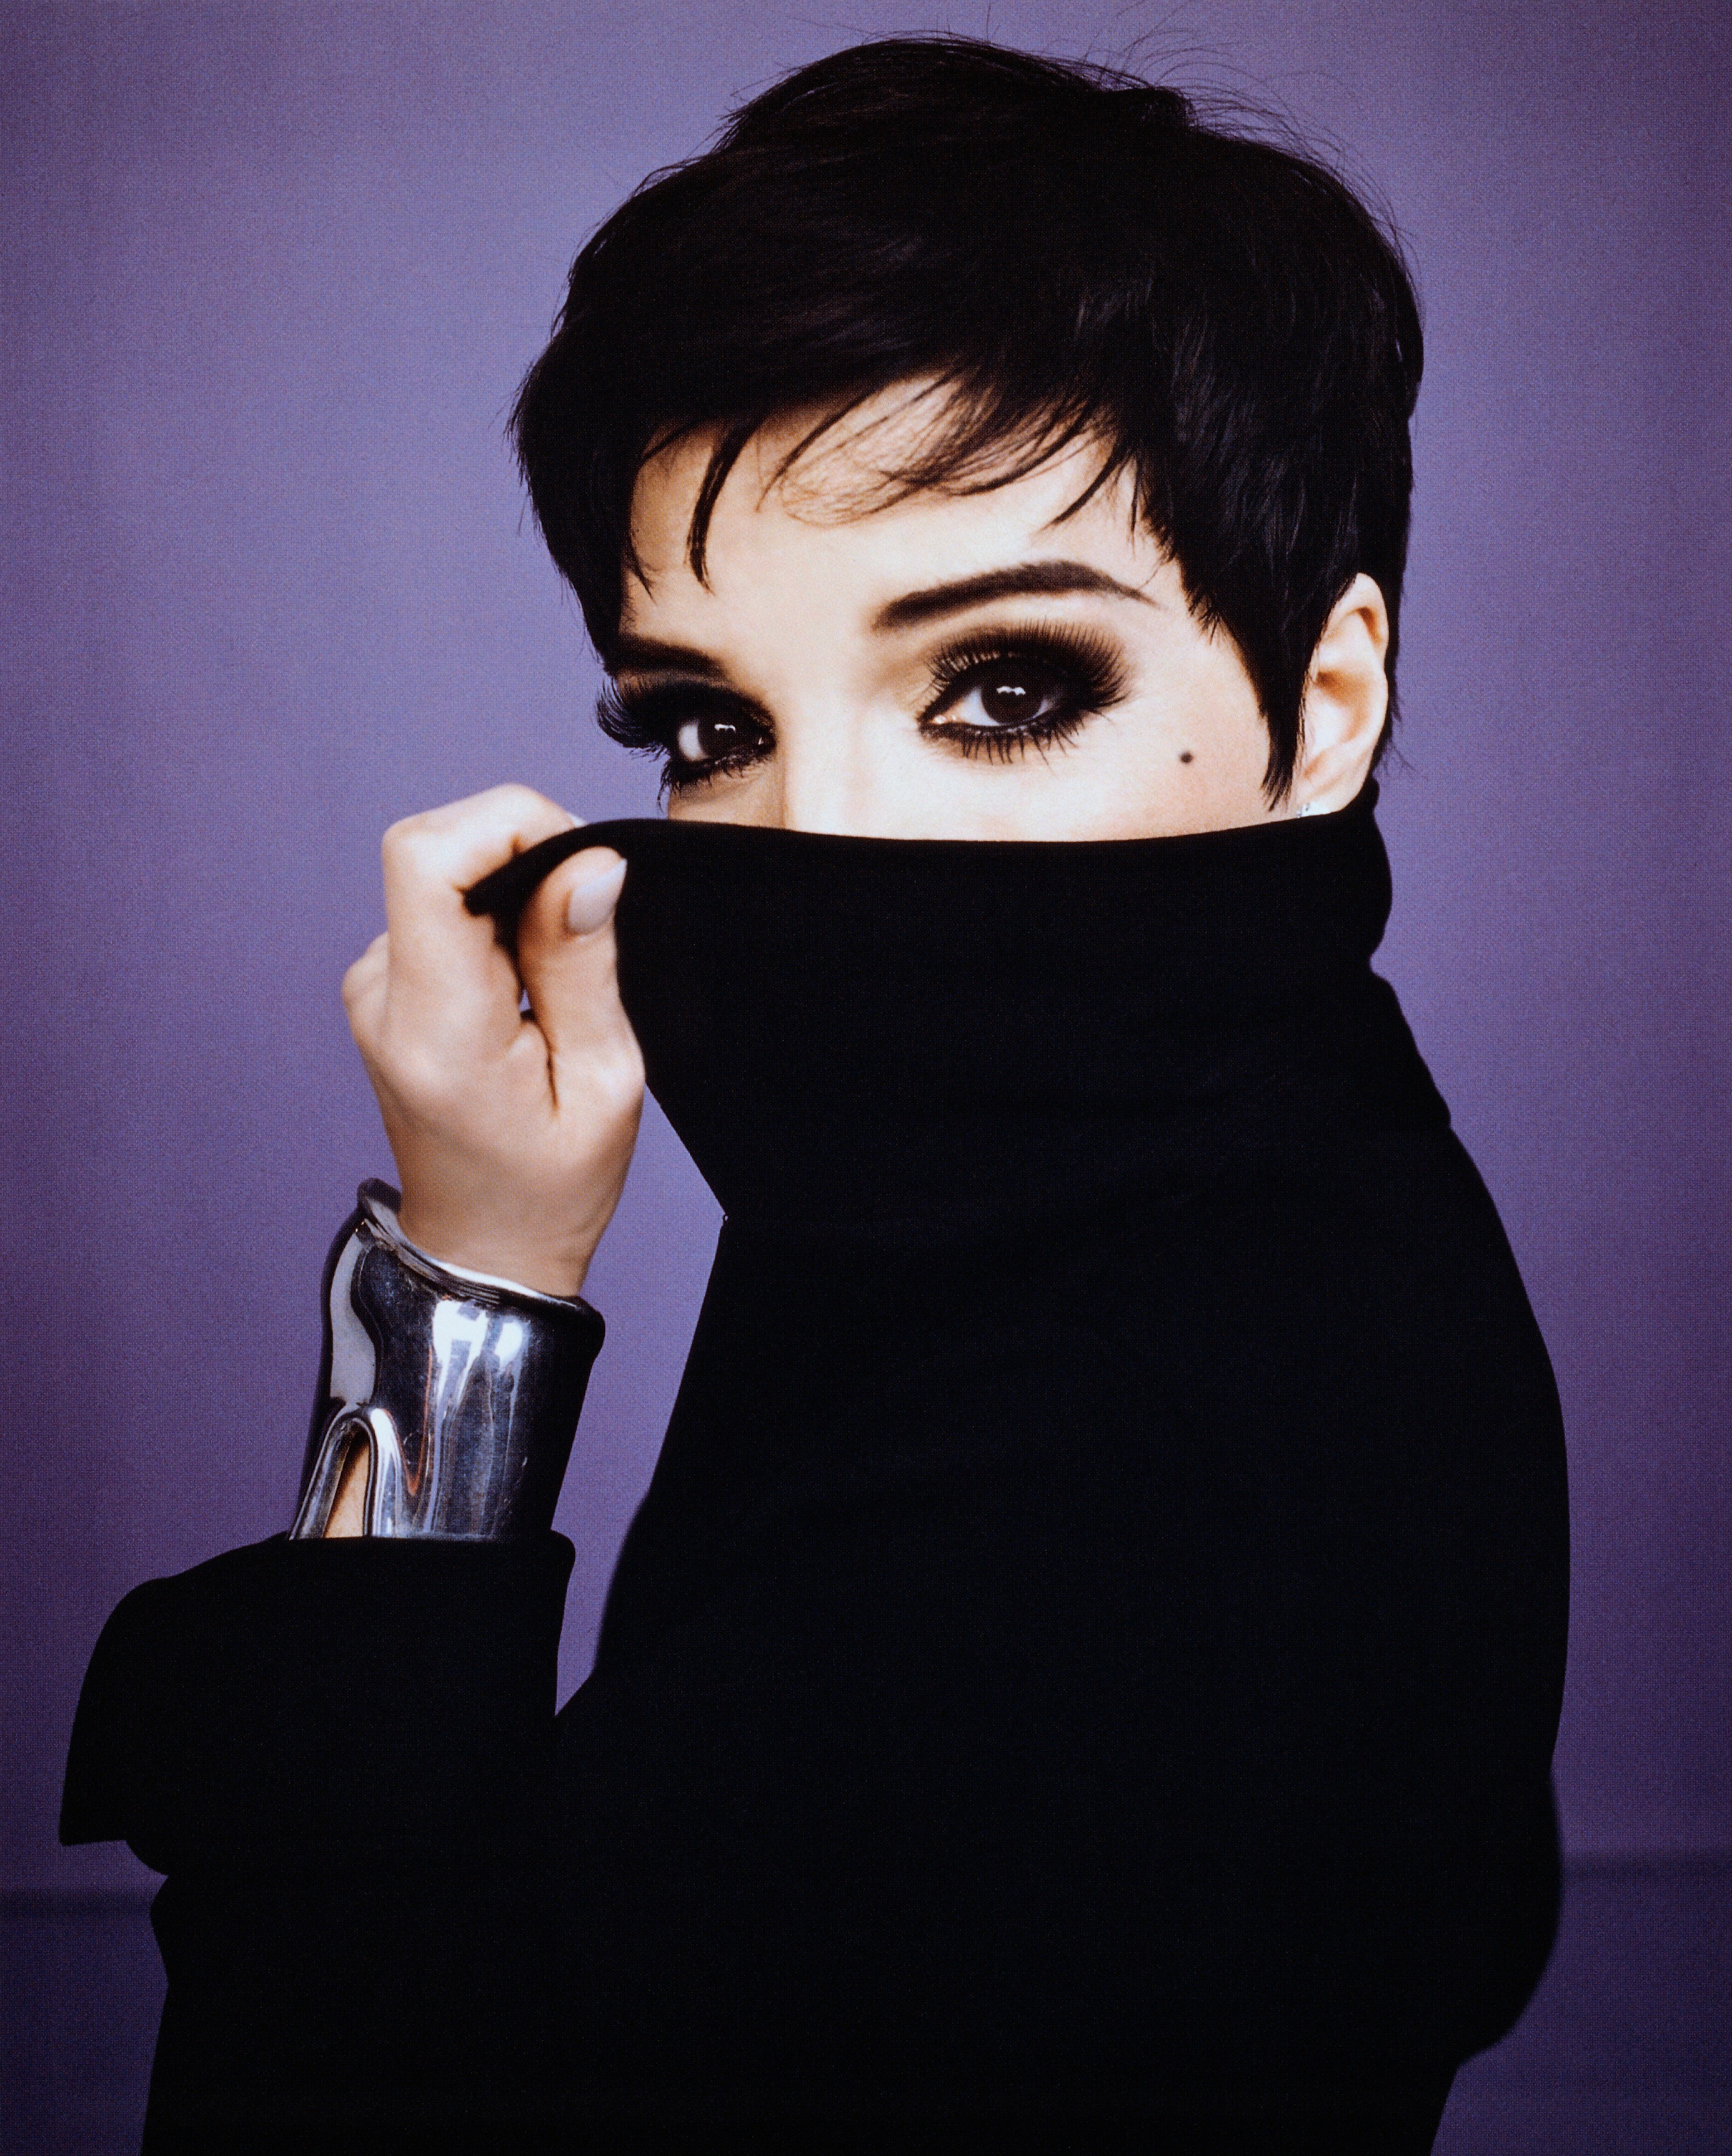 Liza Minnelli photo, pics, wallpaper - photo #